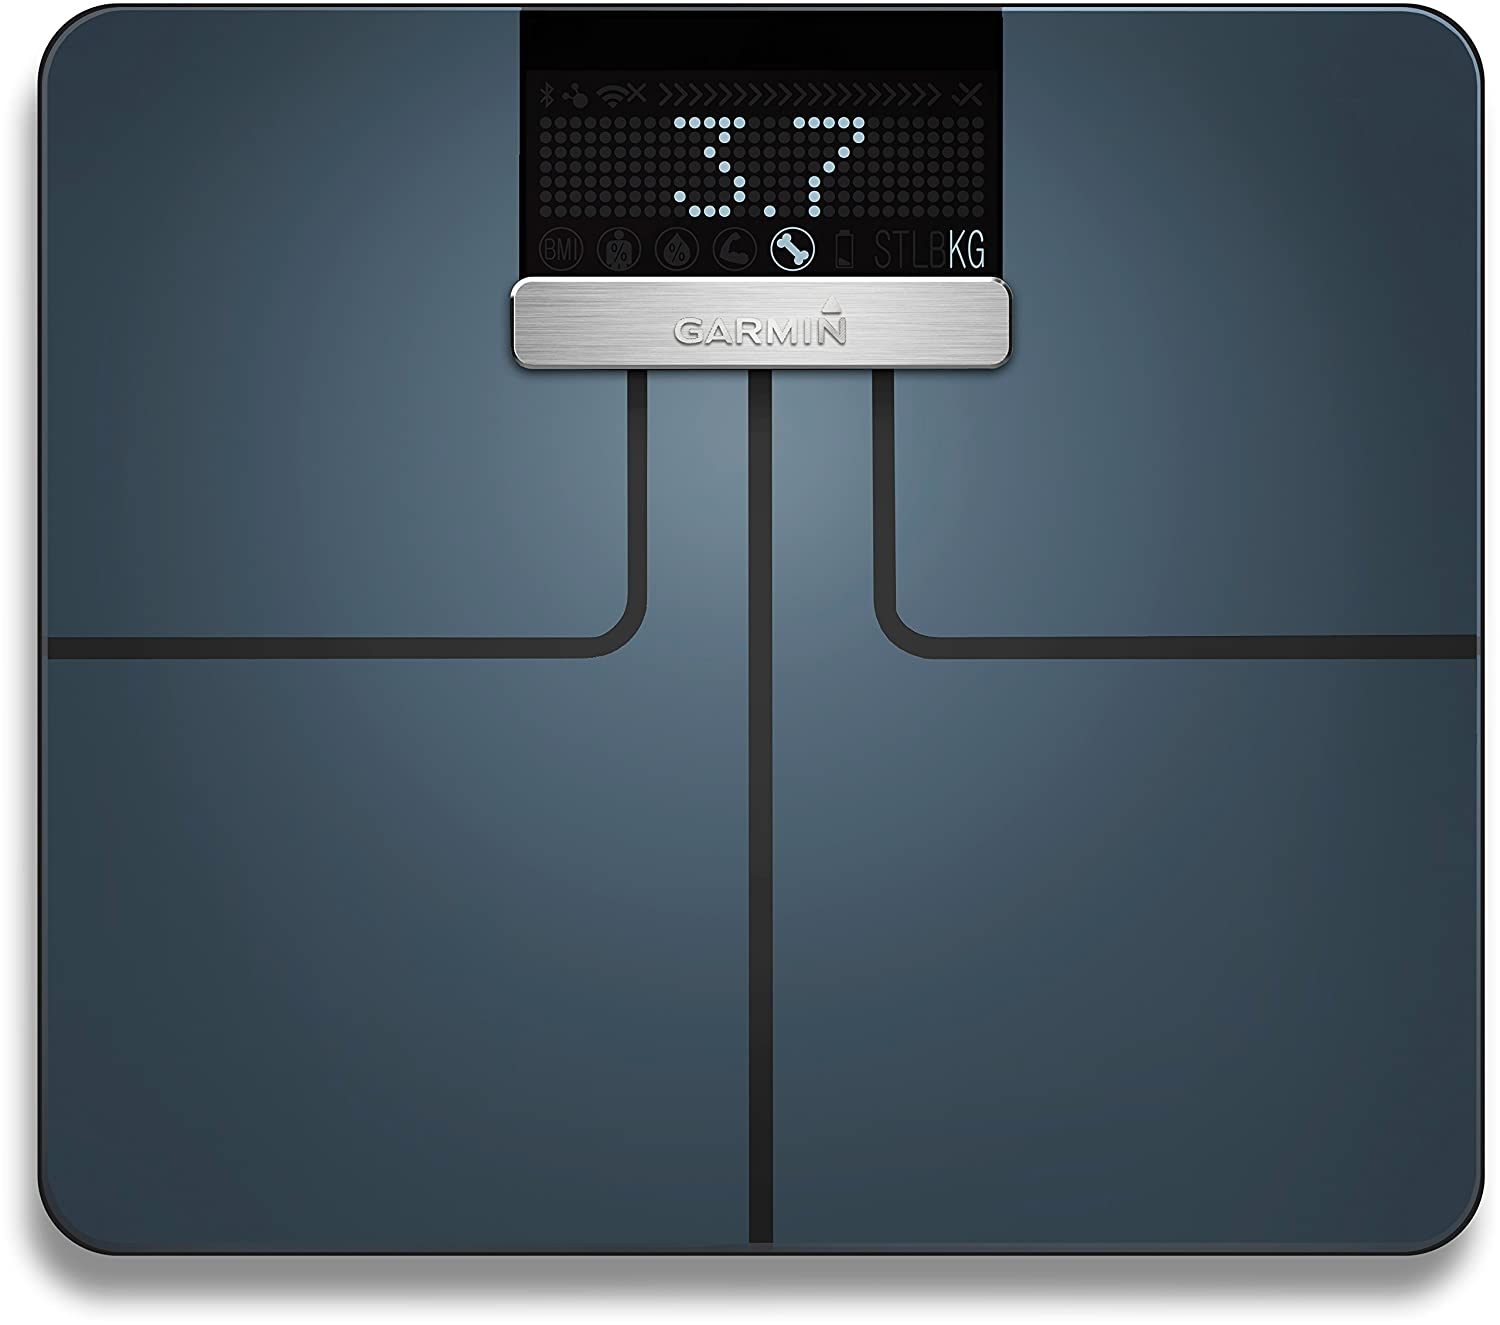 Amazon.com: Garmin 010-01591-10 Garmin Index Smart Scale - Black International Version: Electronics